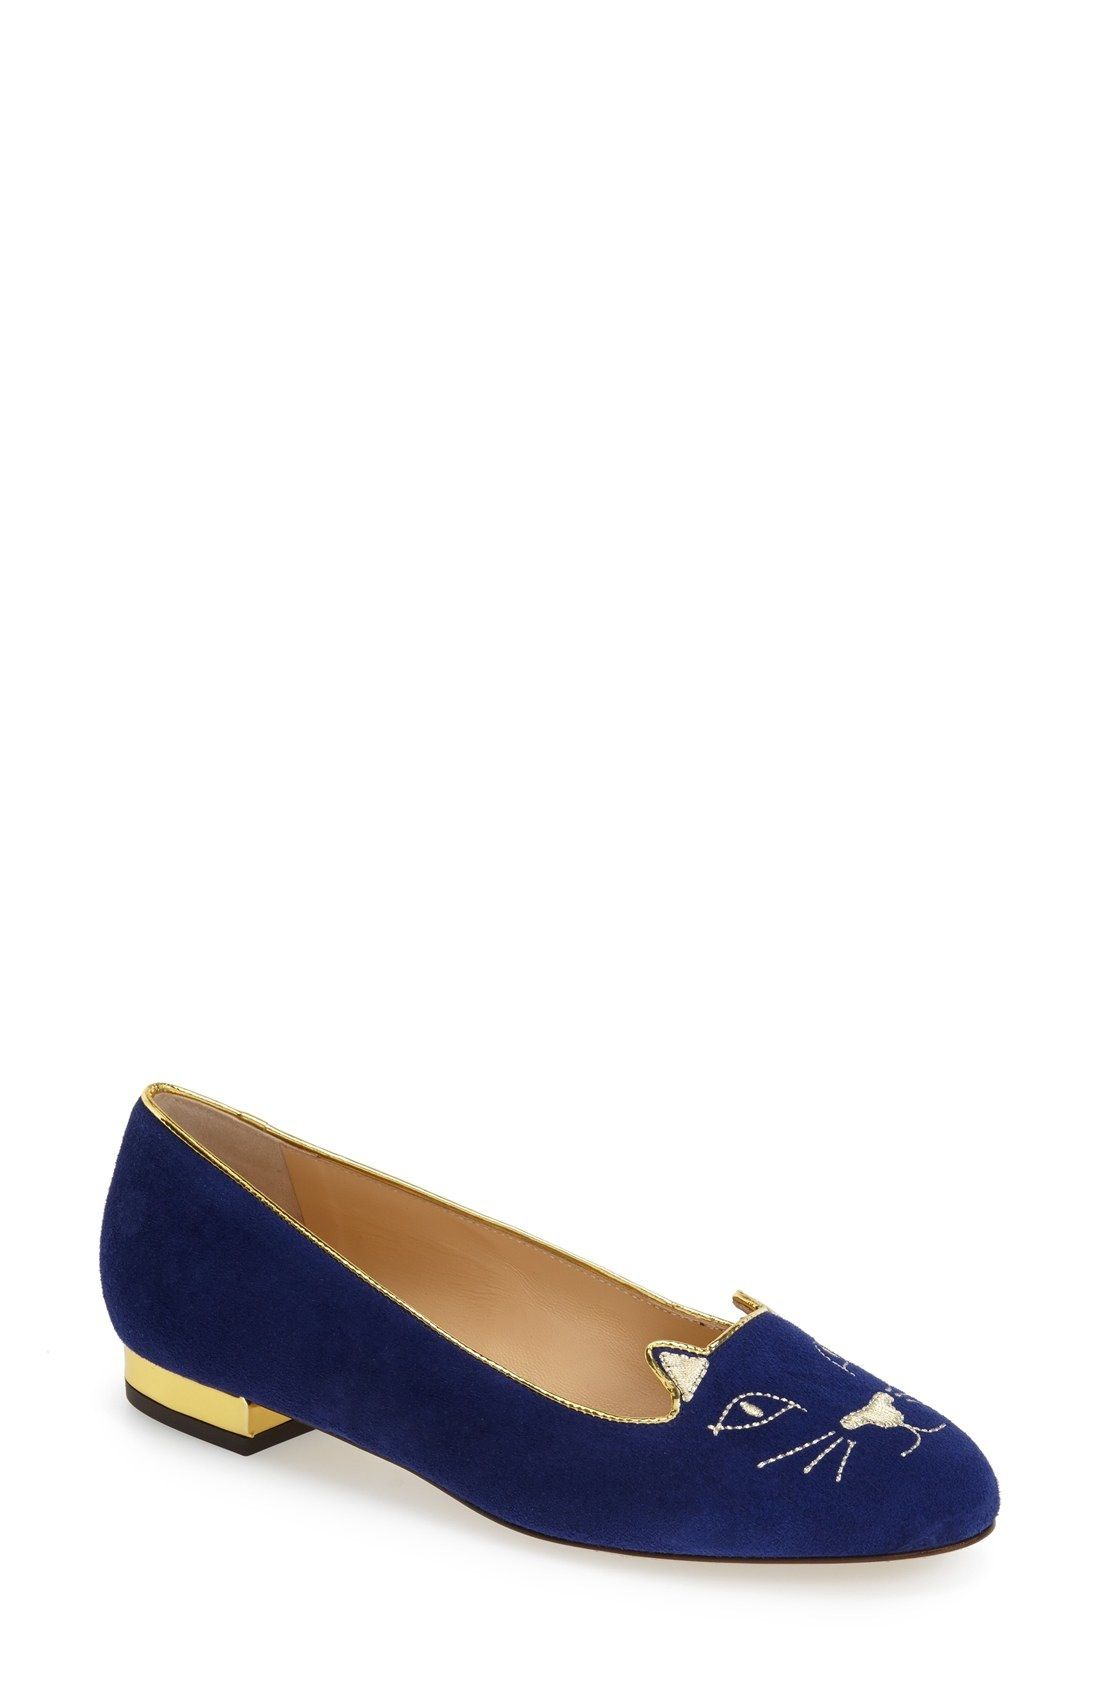 Charlotte Olympia 'Kitty' Suede Flat (Nordstrom Exclusive) available at #Nordstrom